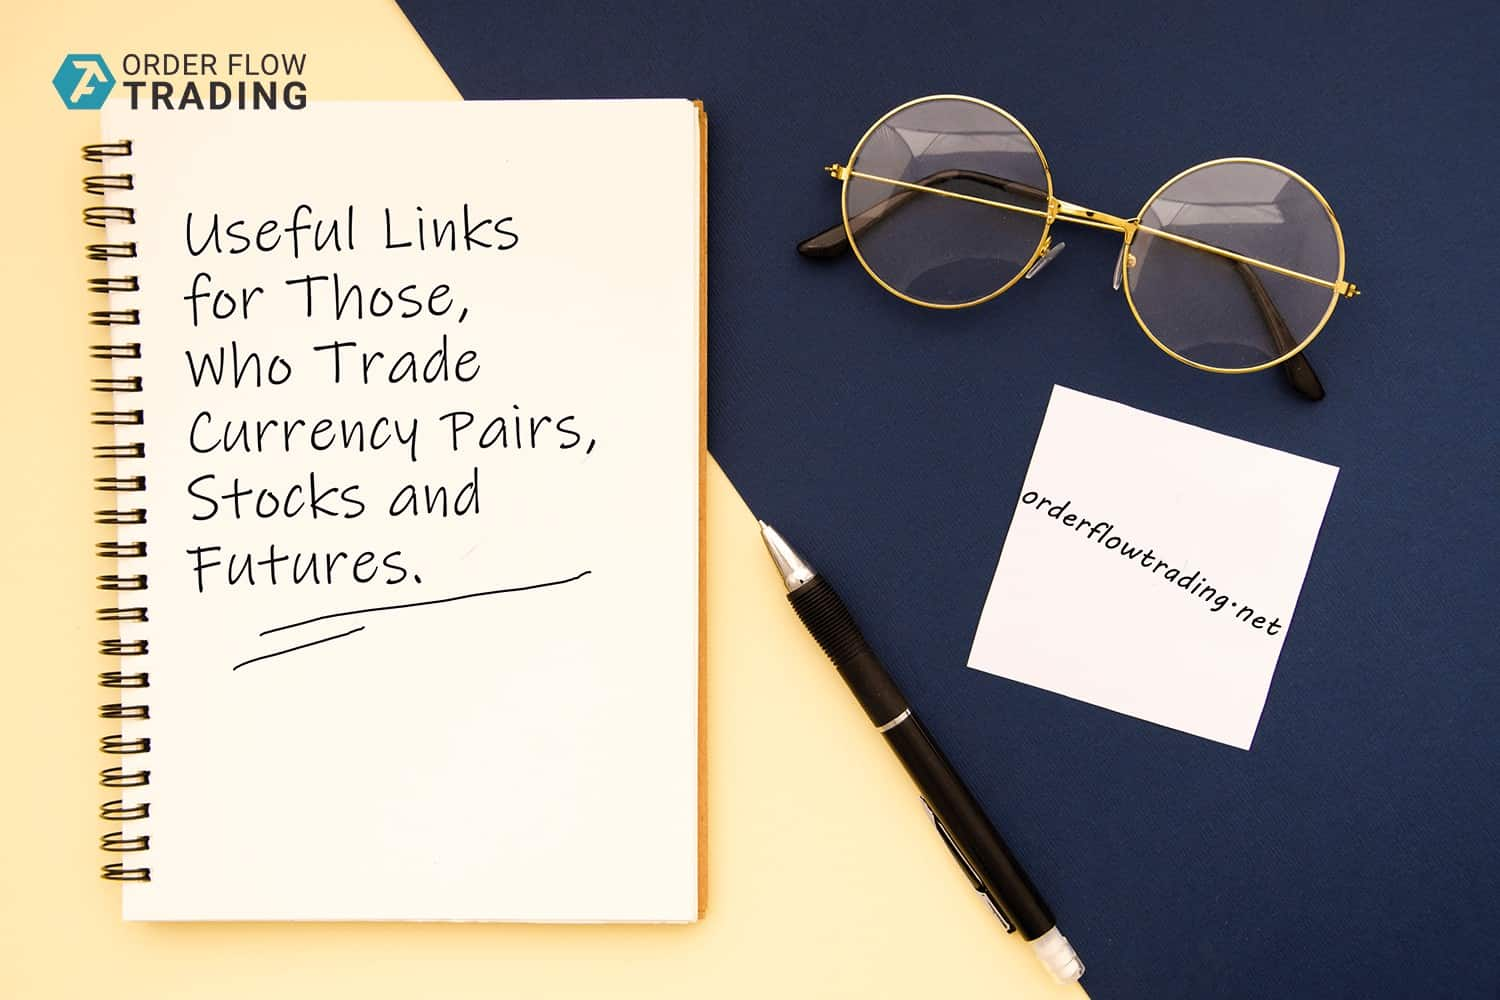 Useful resources for traders who trade currency pairs, stocks and futures.